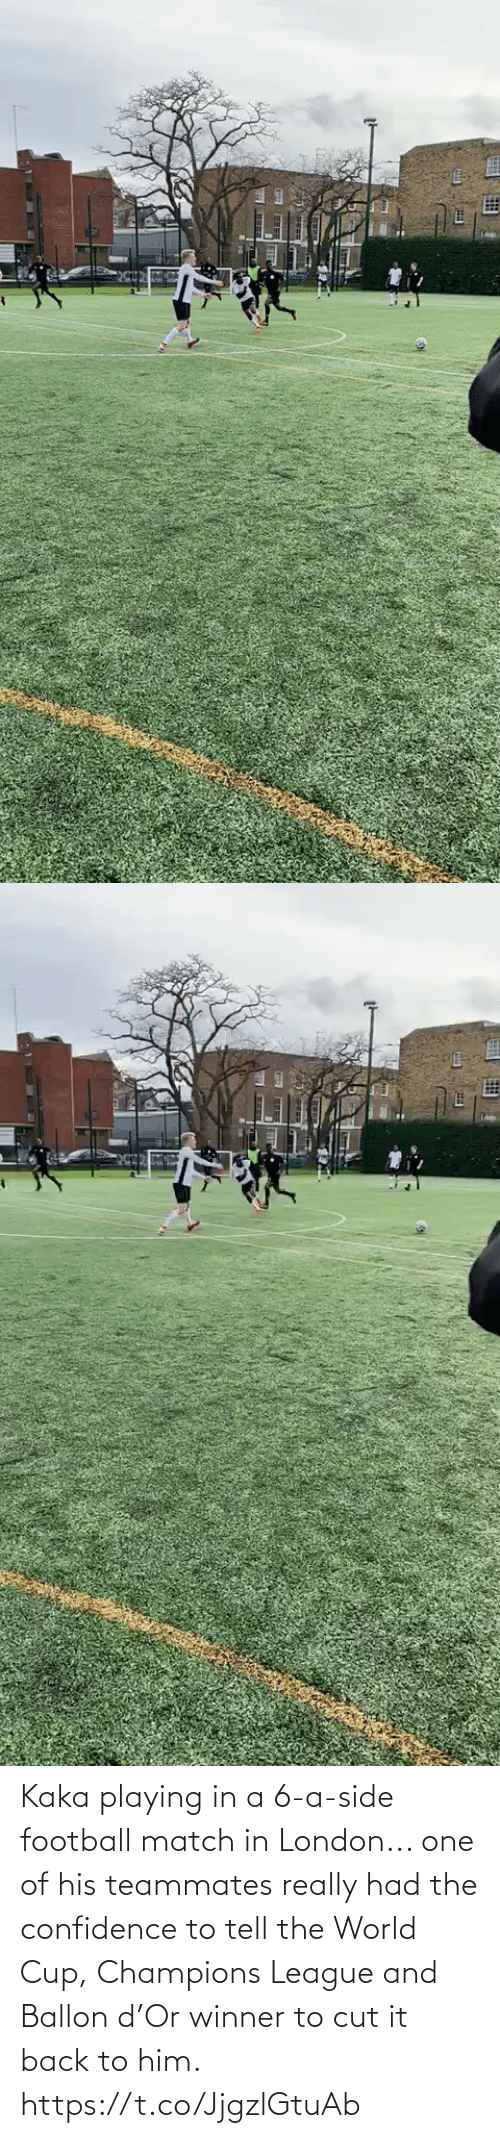 Champions League: Kaka playing in a 6-a-side football match in London... one of his teammates really had the confidence to tell the World Cup, Champions League and Ballon d'Or winner to cut it back to him.   https://t.co/JjgzlGtuAb